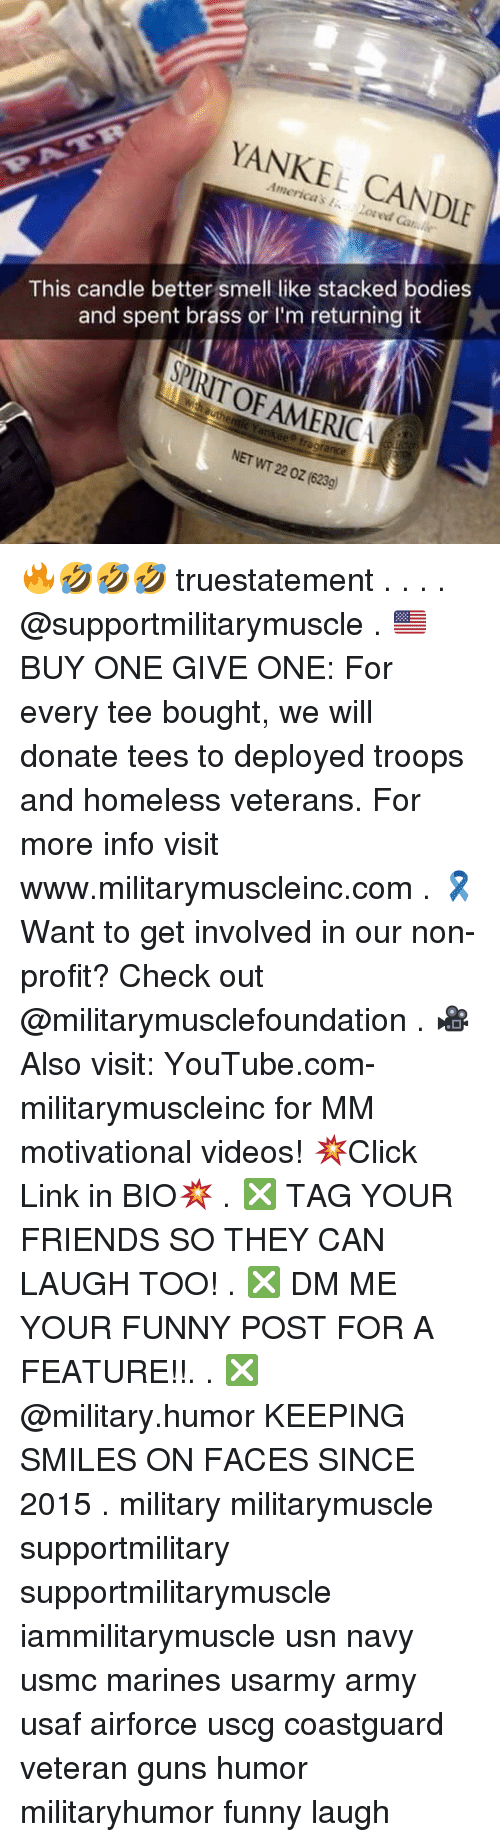 Get Involved: YANKEE CANDLE  This candle better smell like stacked bodies  and spent brass orI'm returning it  PIRIT OF AMERICA  ee fregrance  NET WT 22 0z (623g) 🔥🤣🤣🤣 truestatement . . . . @supportmilitarymuscle . 🇺🇸BUY ONE GIVE ONE: For every tee bought, we will donate tees to deployed troops and homeless veterans. For more info visit www.militarymuscleinc.com . 🎗Want to get involved in our non-profit? Check out @militarymusclefoundation . 🎥Also visit: YouTube.com-militarymuscleinc for MM motivational videos! 💥Click Link in BIO💥 . ❎ TAG YOUR FRIENDS SO THEY CAN LAUGH TOO! . ❎ DM ME YOUR FUNNY POST FOR A FEATURE!!. . ❎ @military.humor KEEPING SMILES ON FACES SINCE 2015 . military militarymuscle supportmilitary supportmilitarymuscle iammilitarymuscle usn navy usmc marines usarmy army usaf airforce uscg coastguard veteran guns humor militaryhumor funny laugh